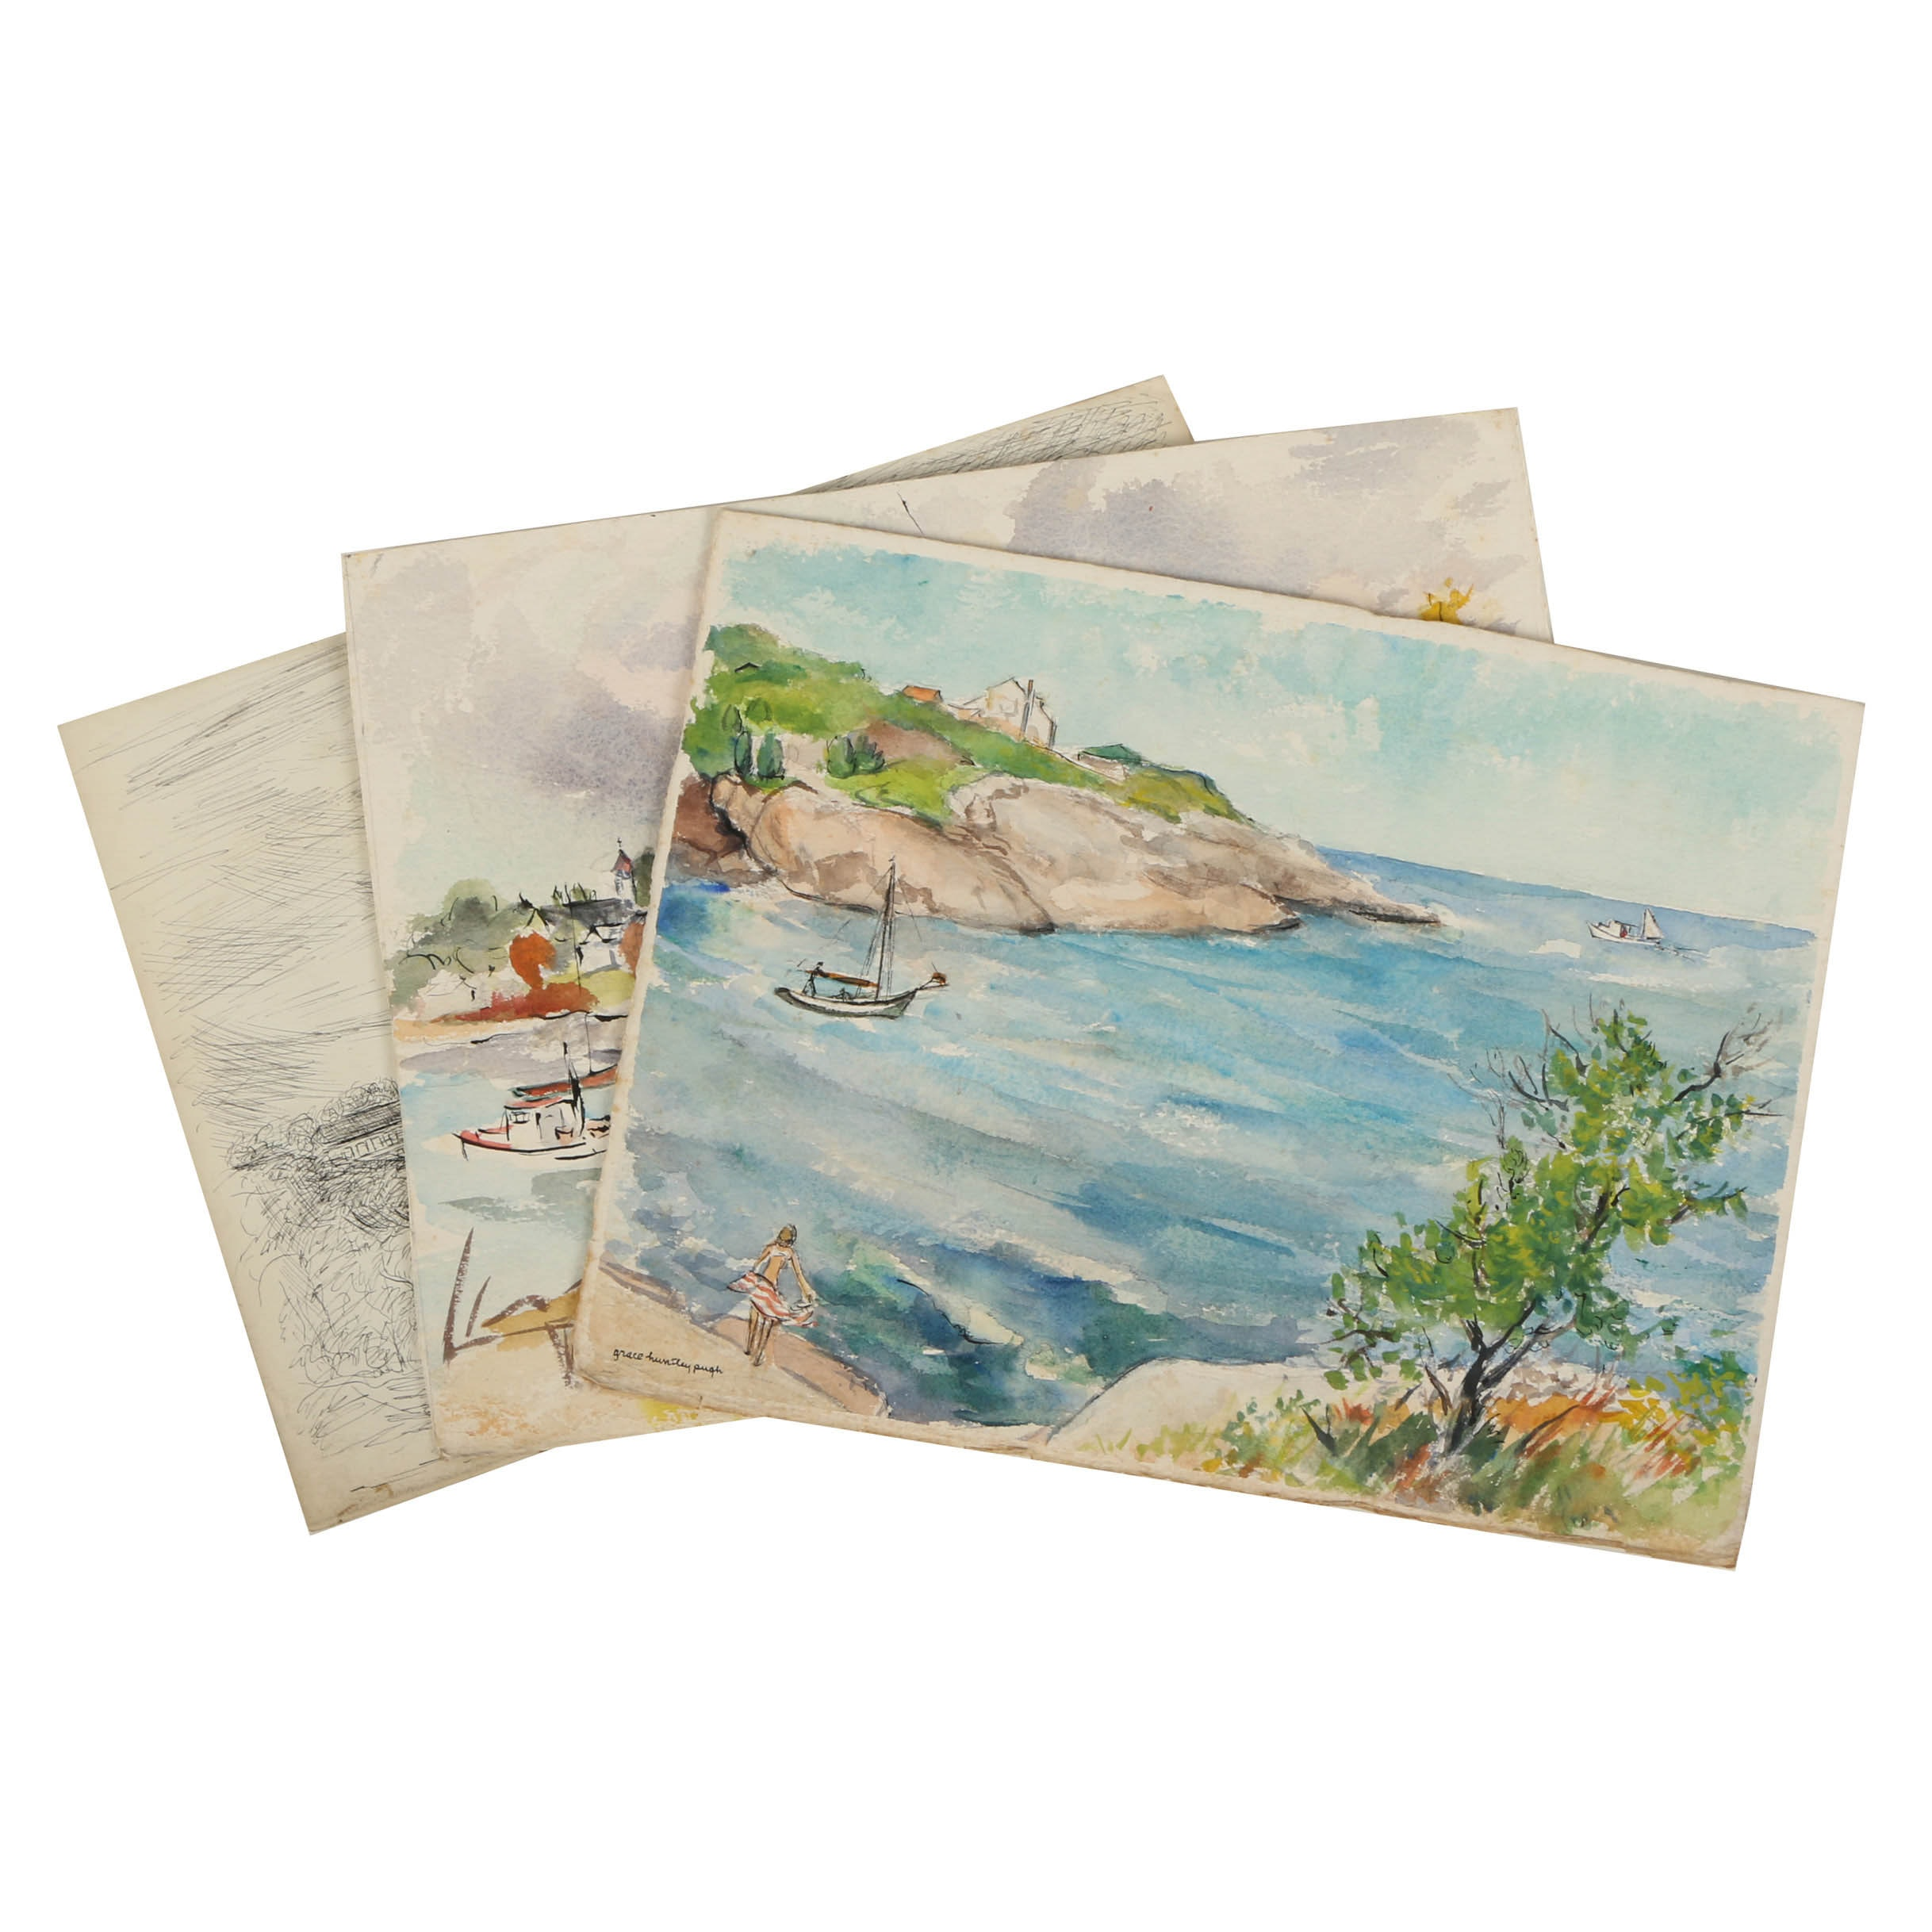 Collection of Landscape Scenes